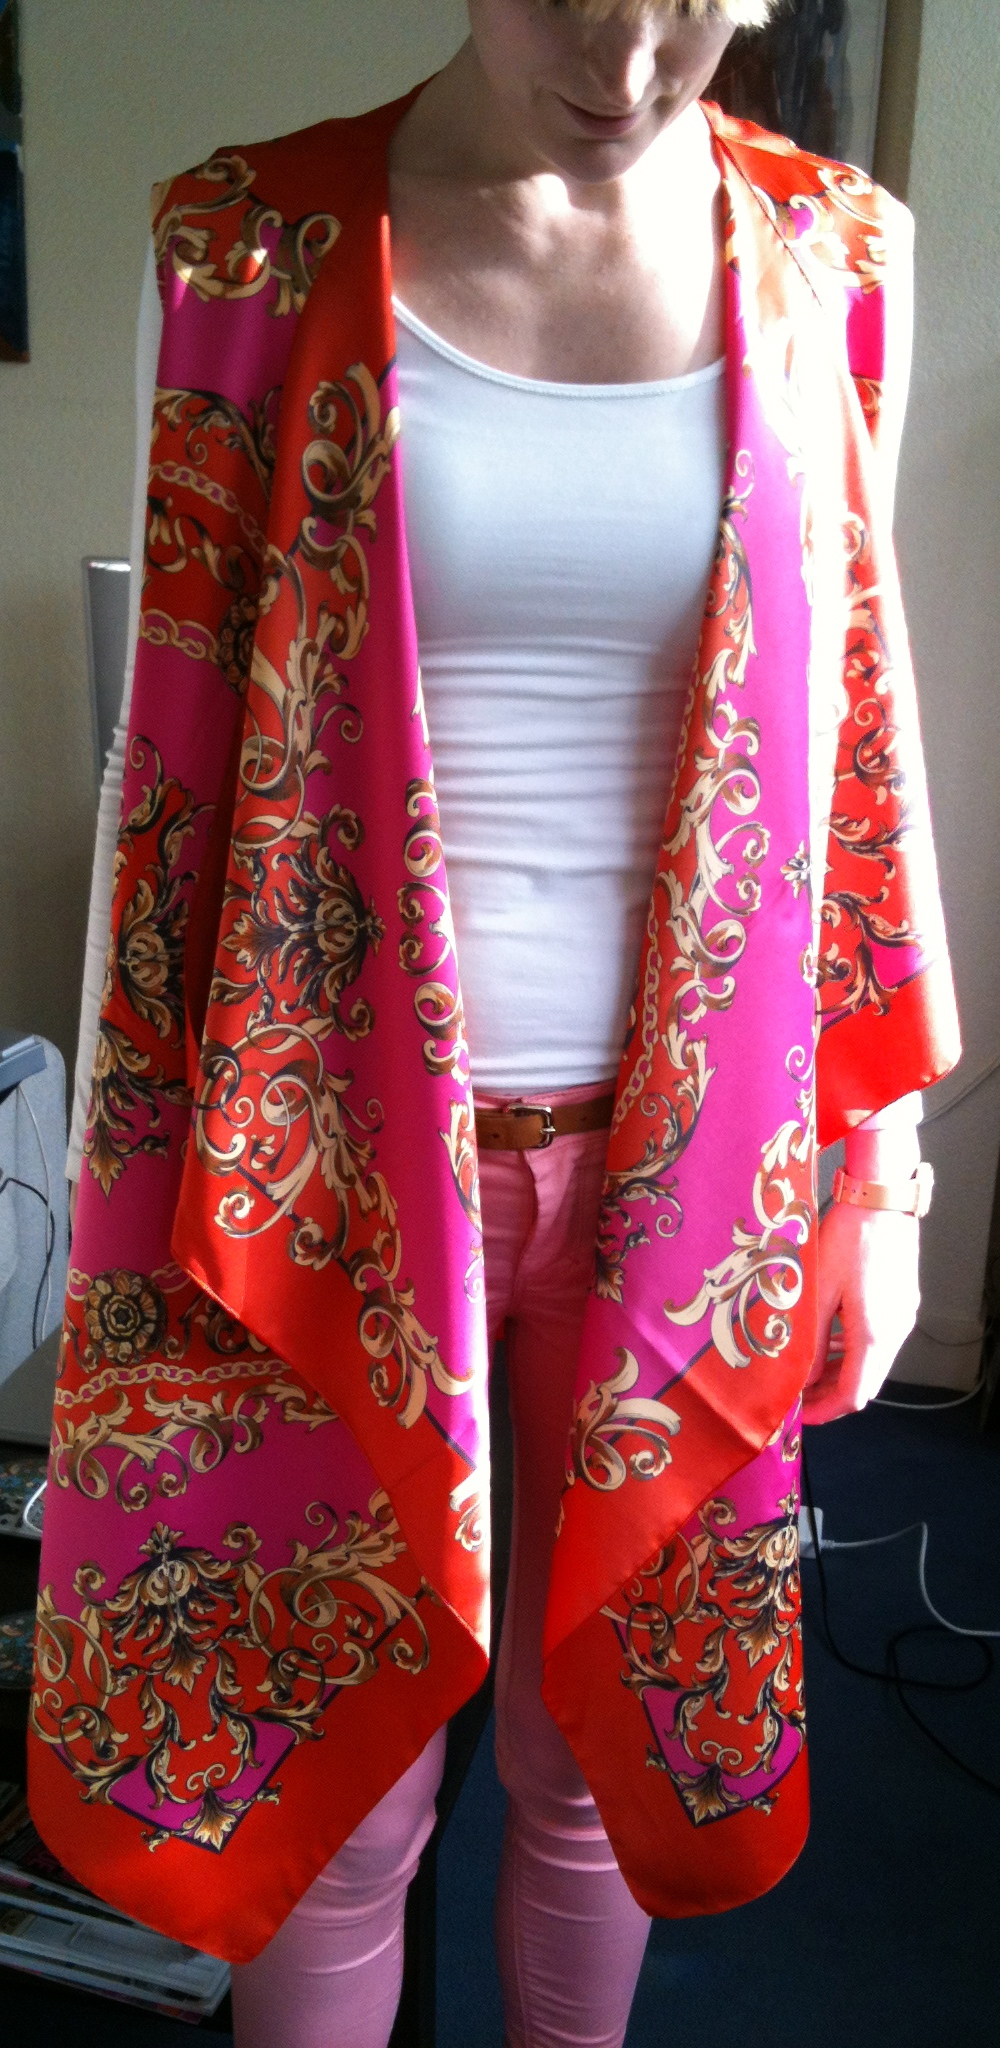 2 Scarf Vest Sewing Projects Burdastyle Com